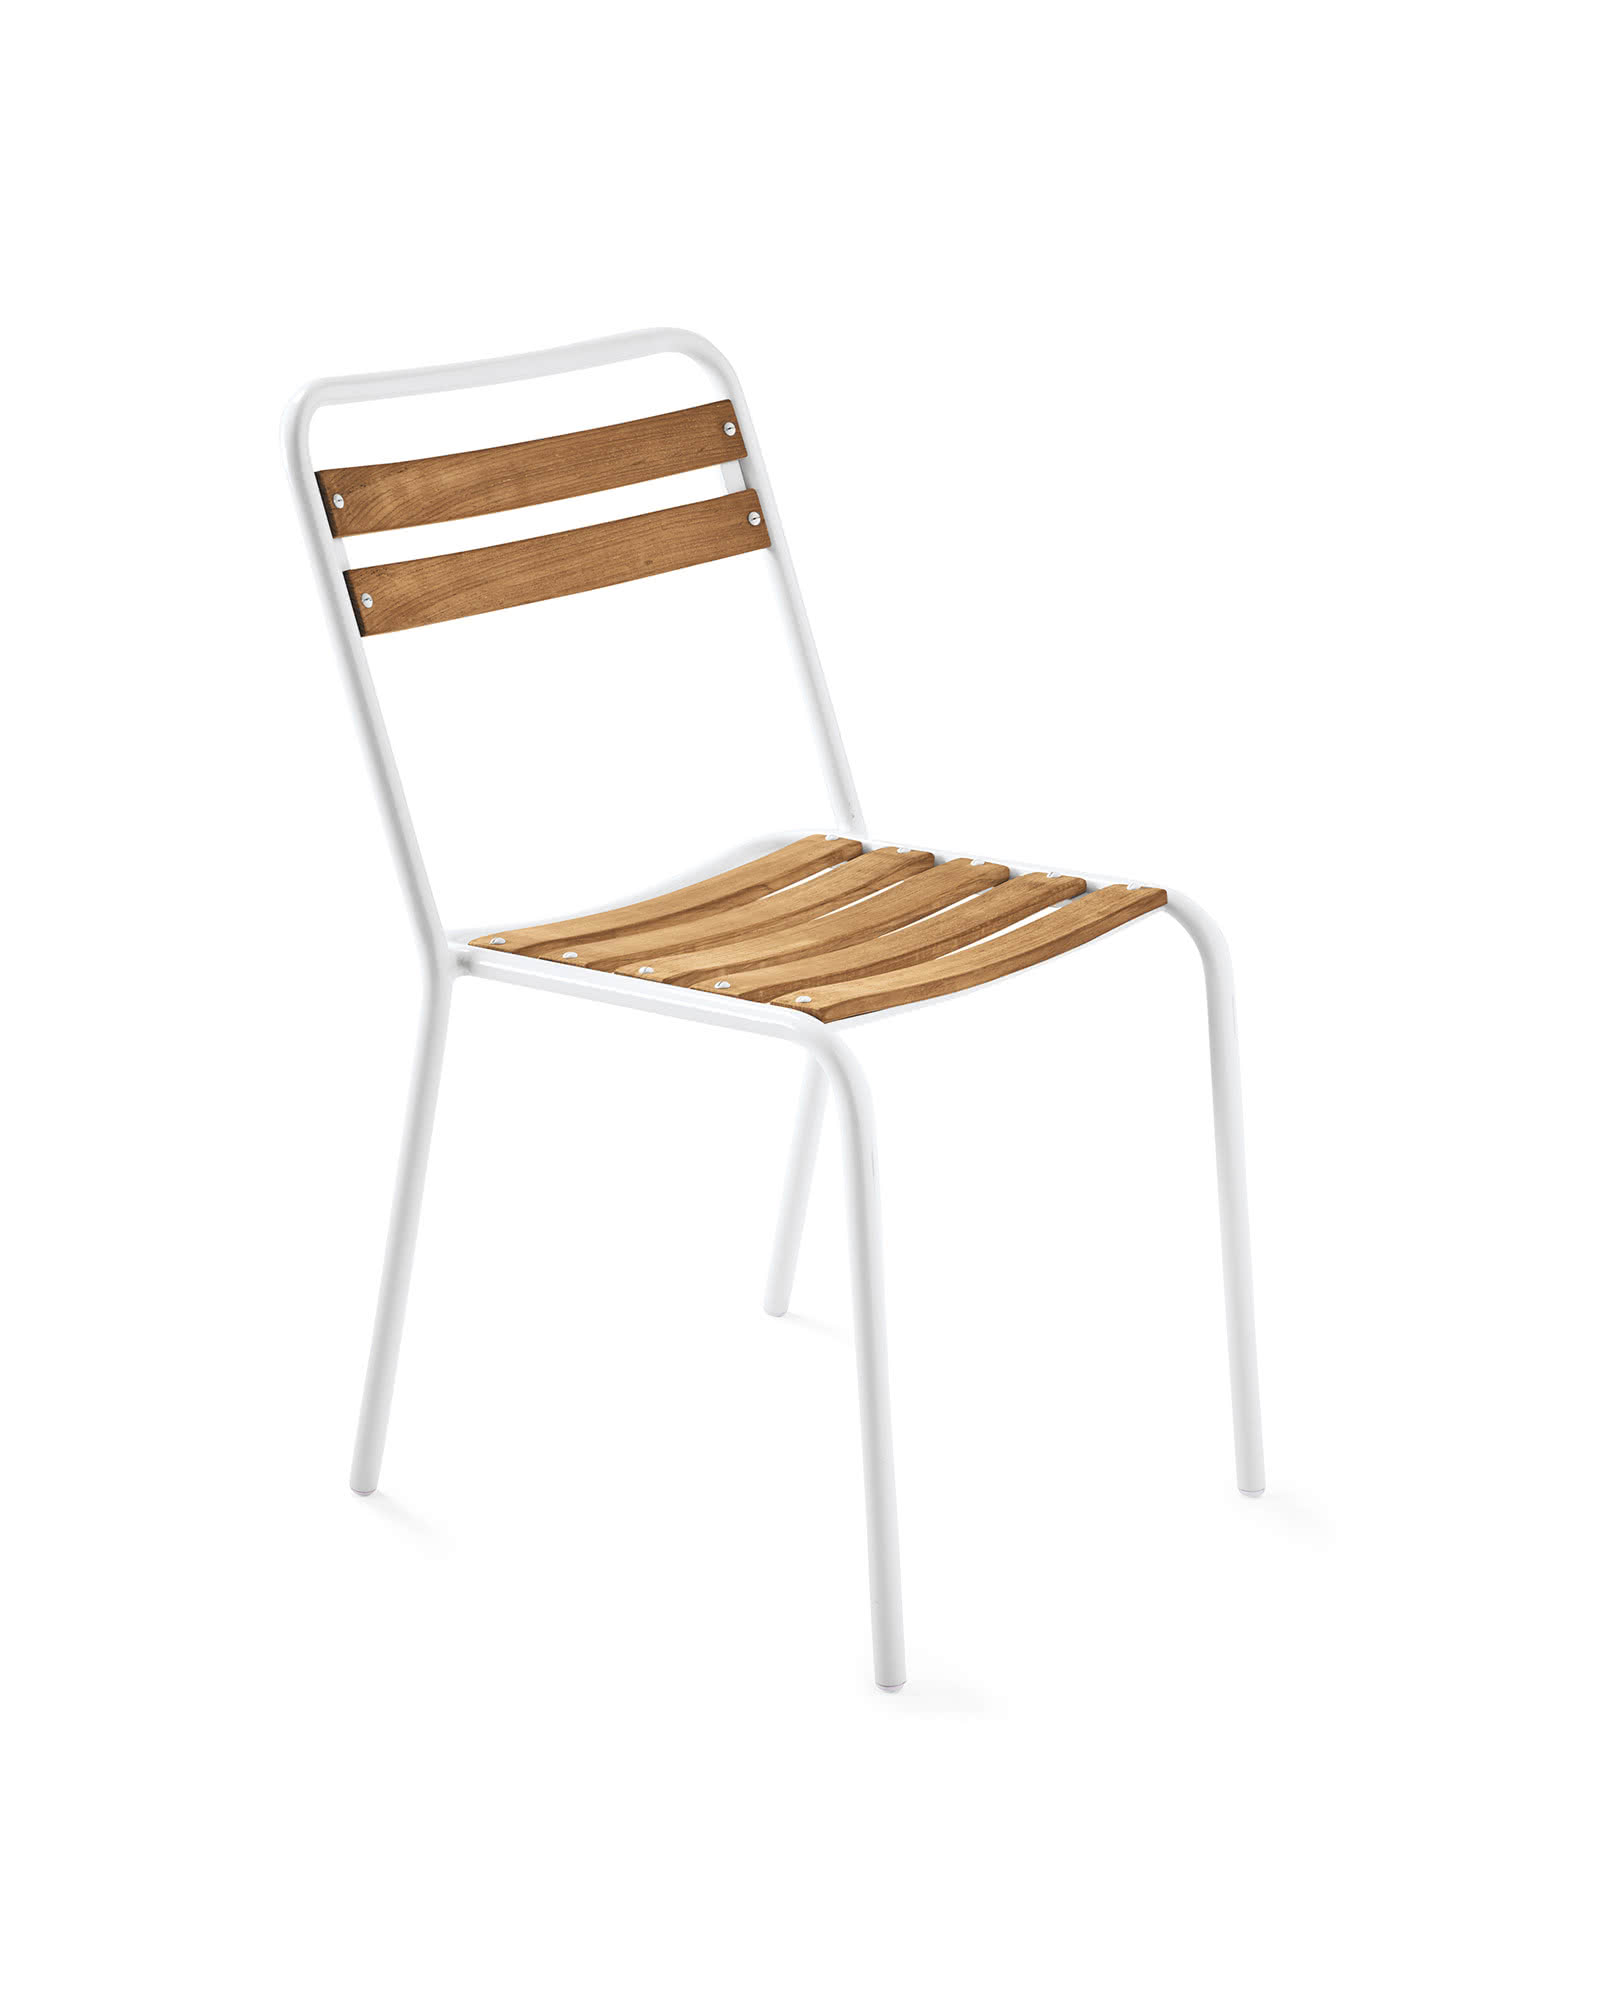 Inverness Outdoor Dining Chair,